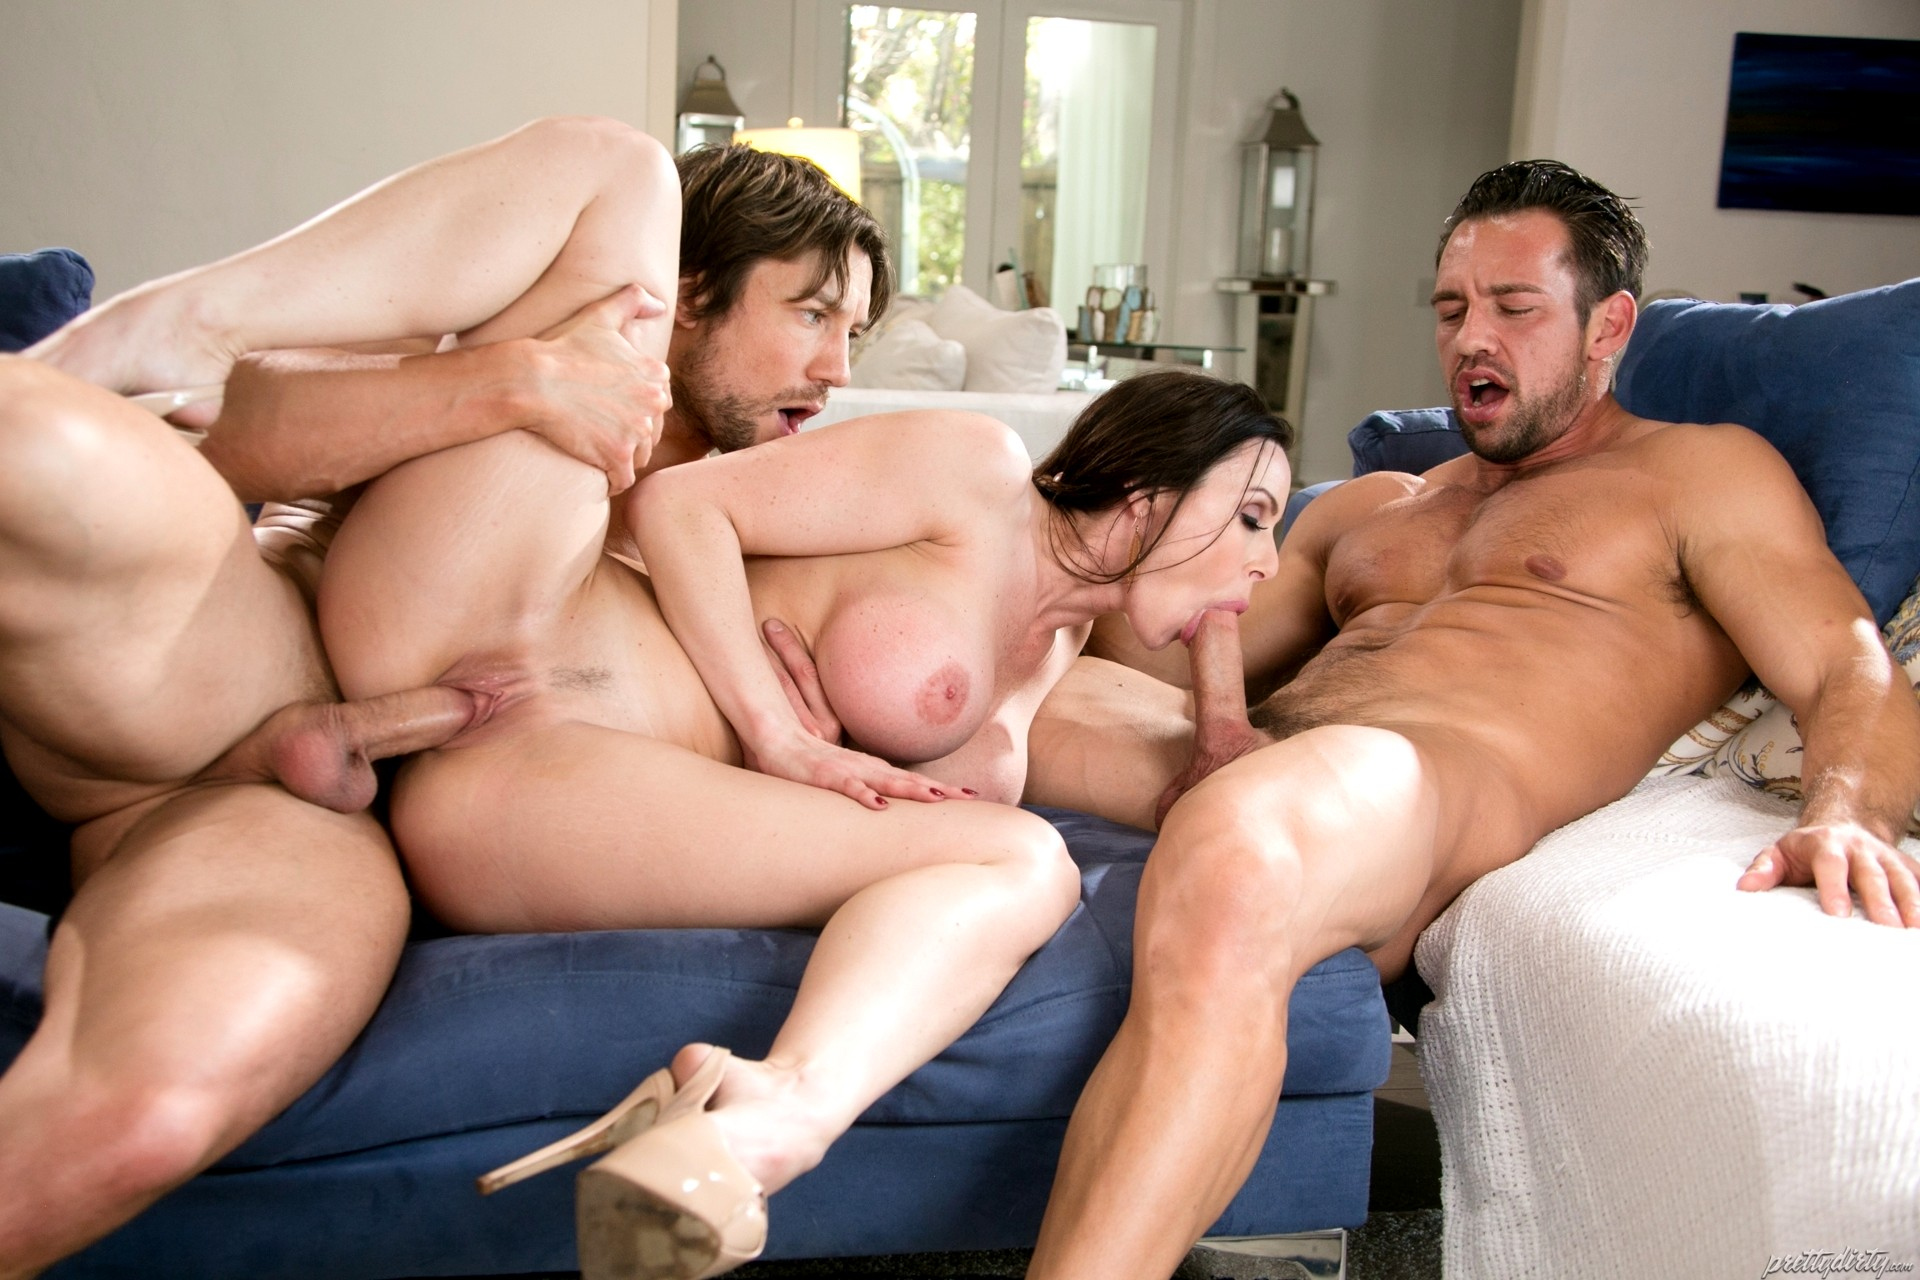 Good looking milf joins a wild threesome with young couple